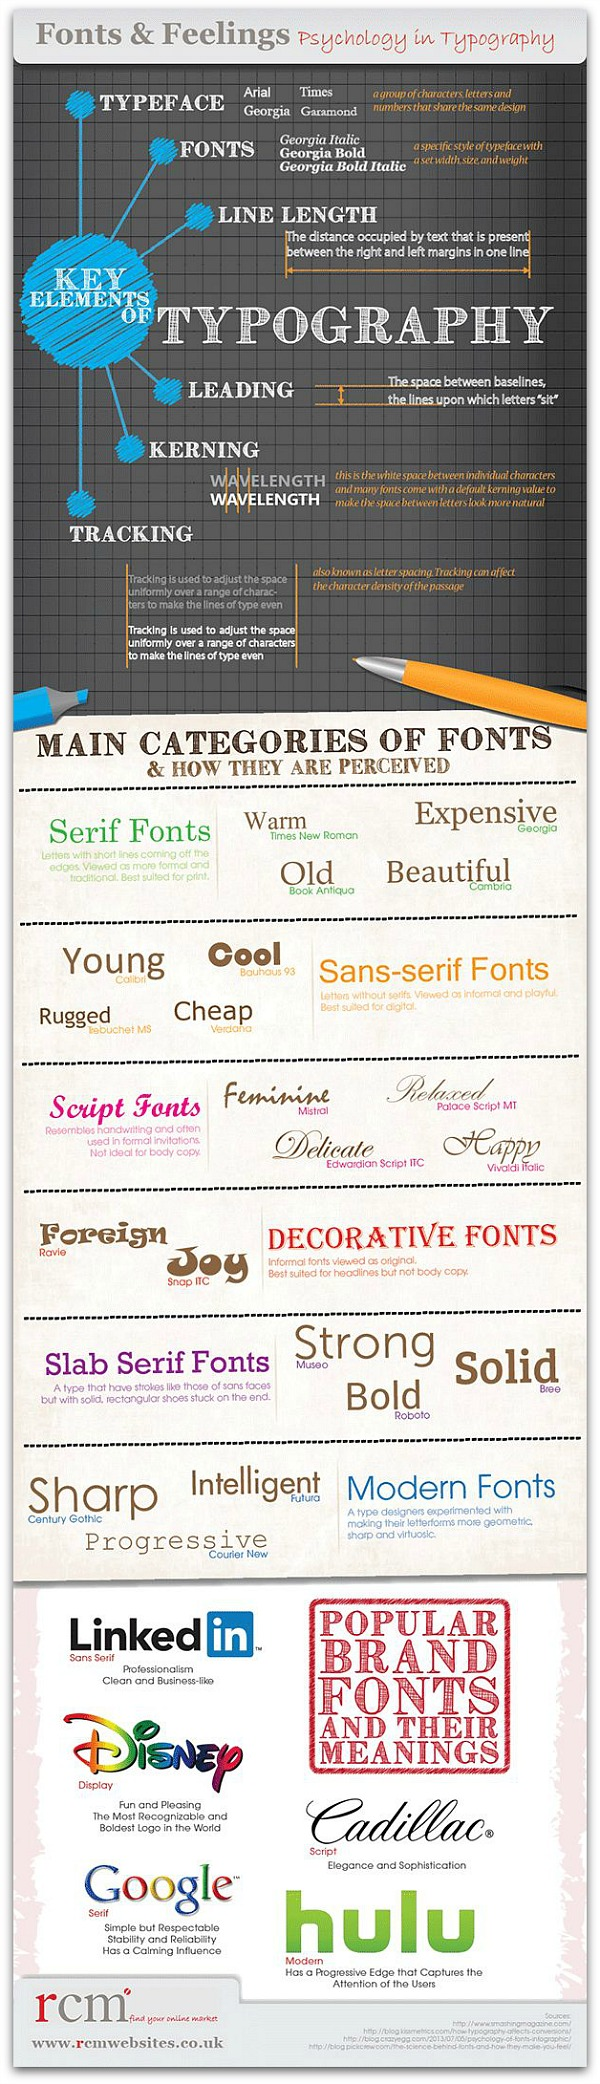 Fonts_Brands_Logos_Infographic